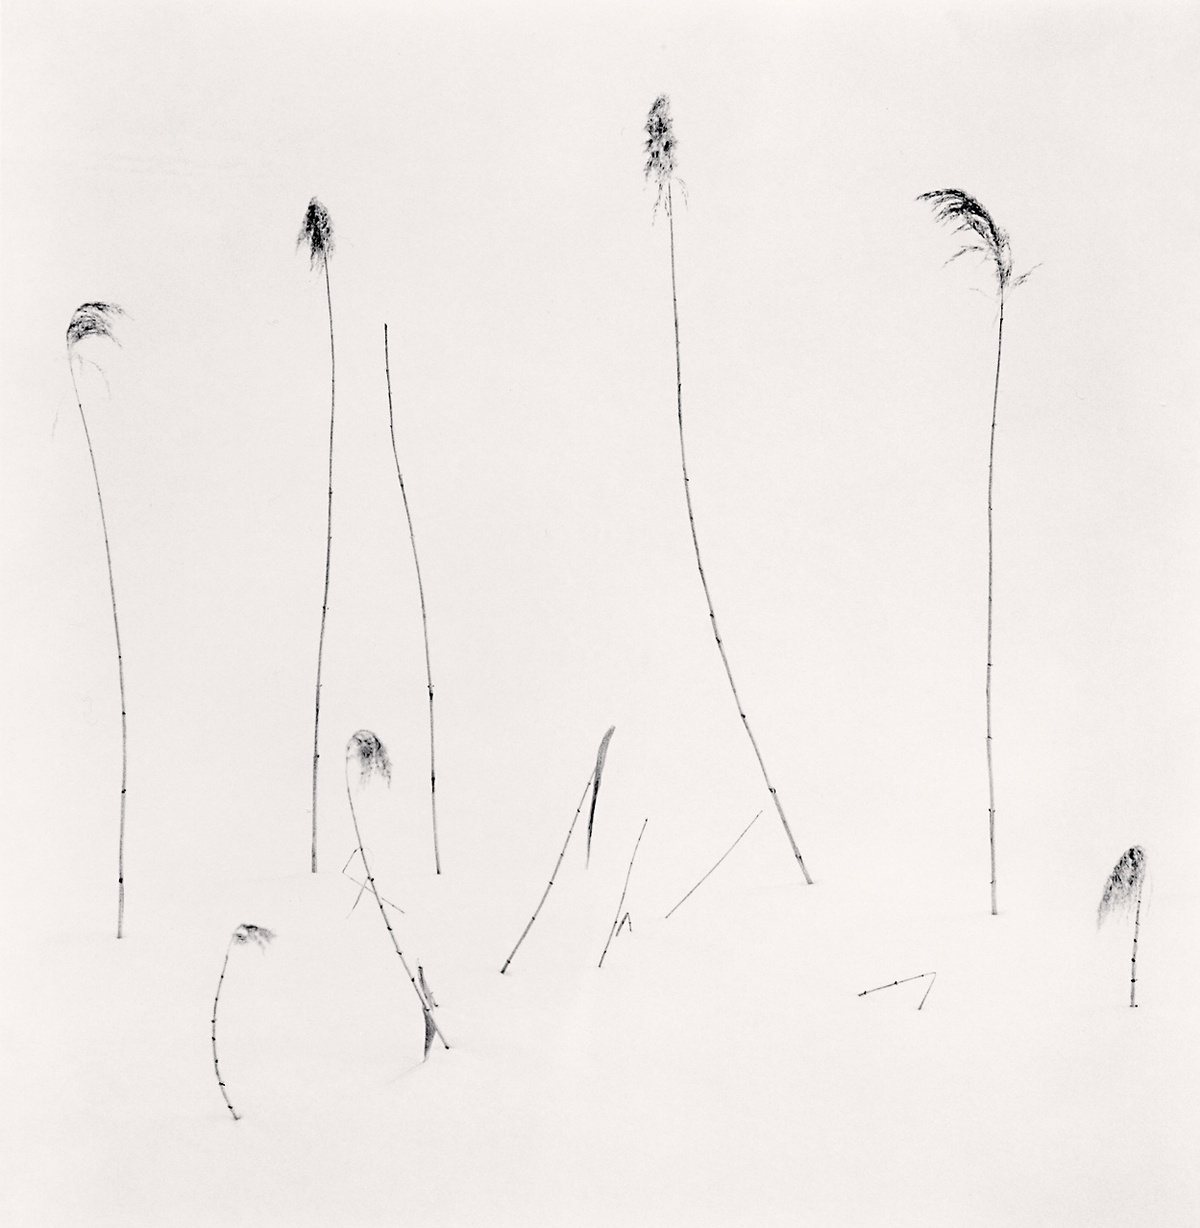 Michael Kenna Twelve Winter Stalks, Furano, Hokkaido, Japan 2012 Sepia Toned Silver Gelatin Print From An Edition Of 45 8 x 8 Inches